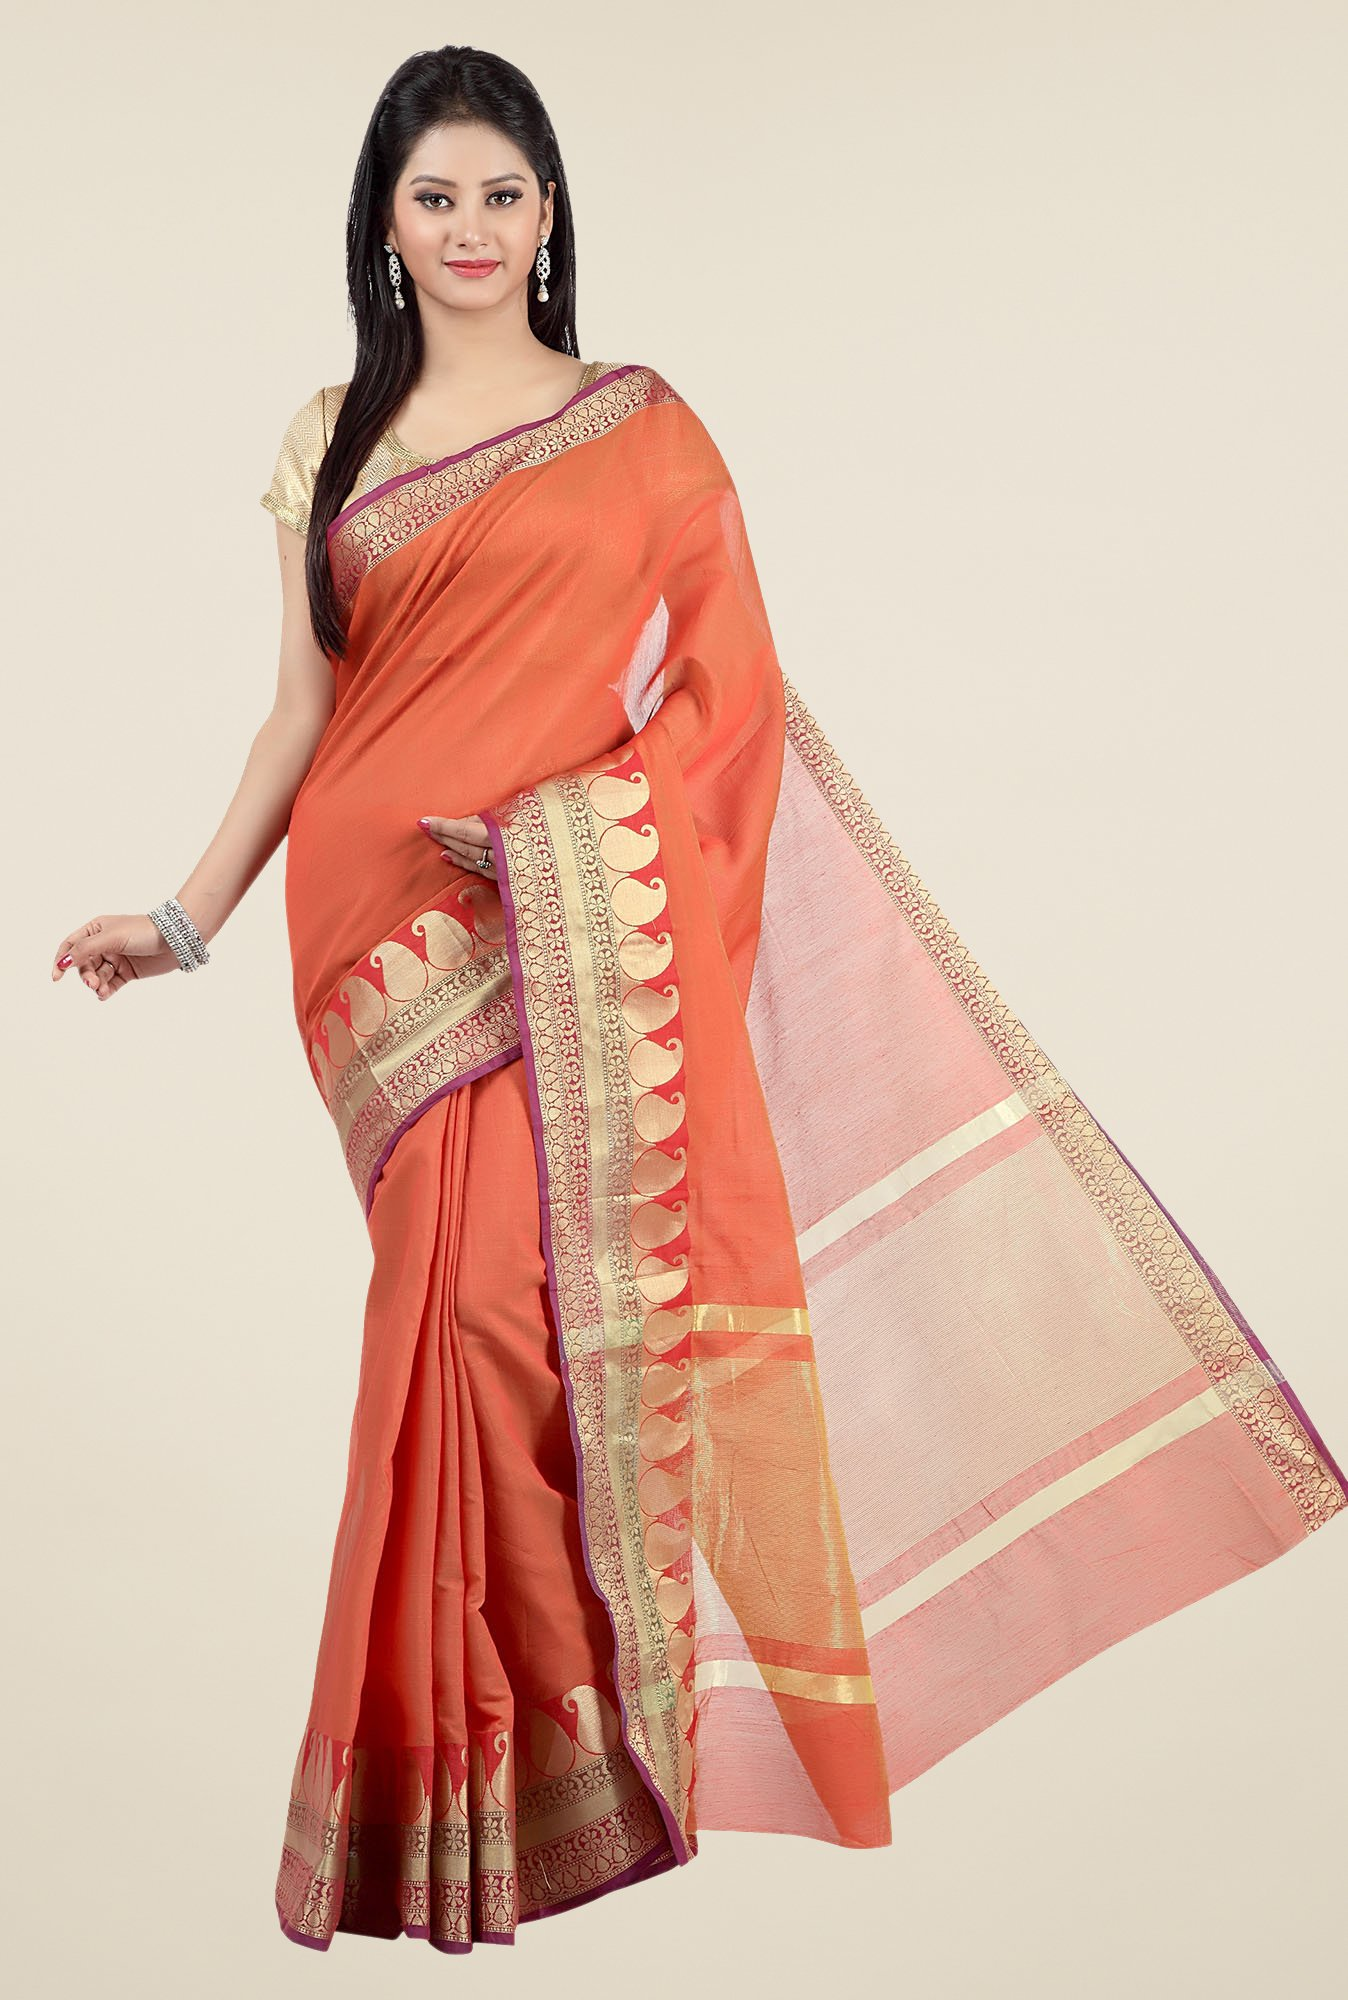 Jashn Orange Paisley Print Saree